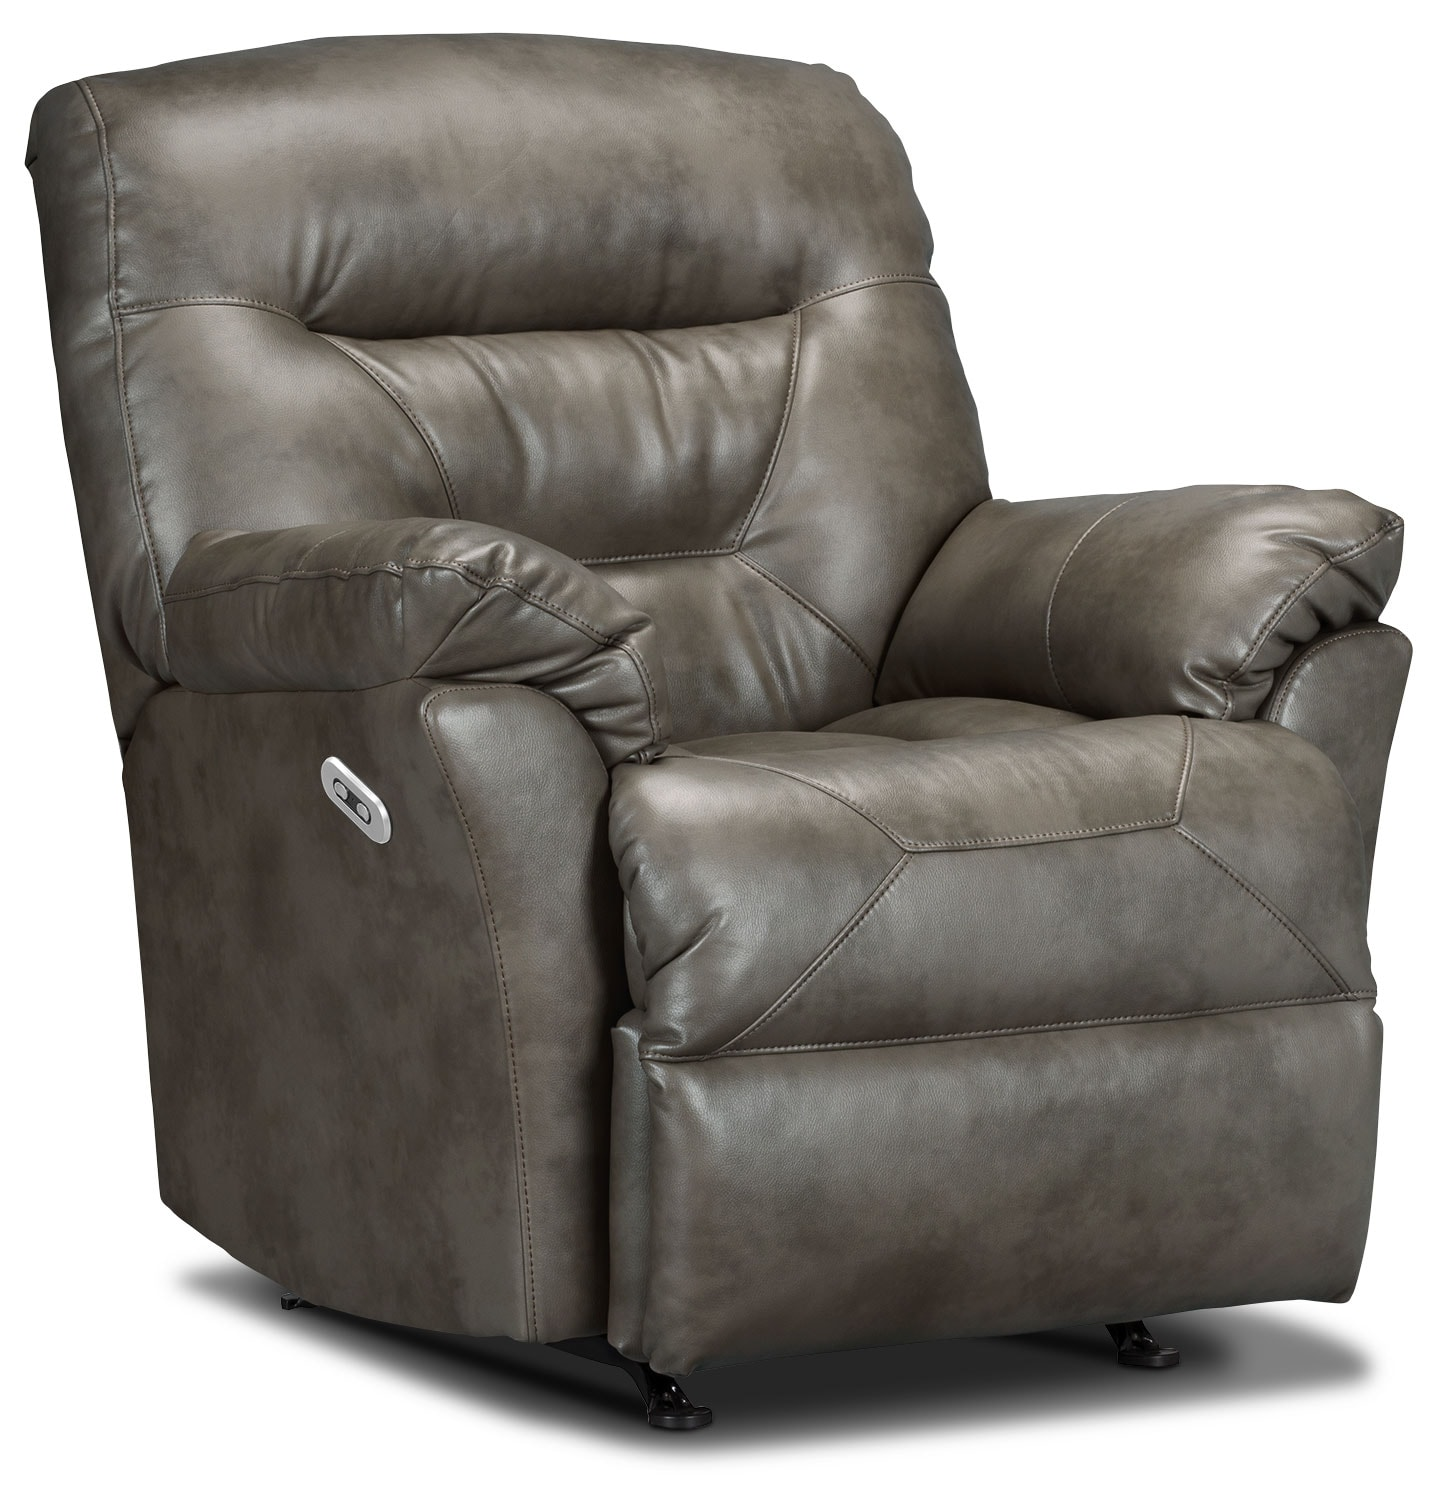 Living Room Furniture - Designed2B Recliner 4579 Leather-Look Fabric Power Recliner - Smoke